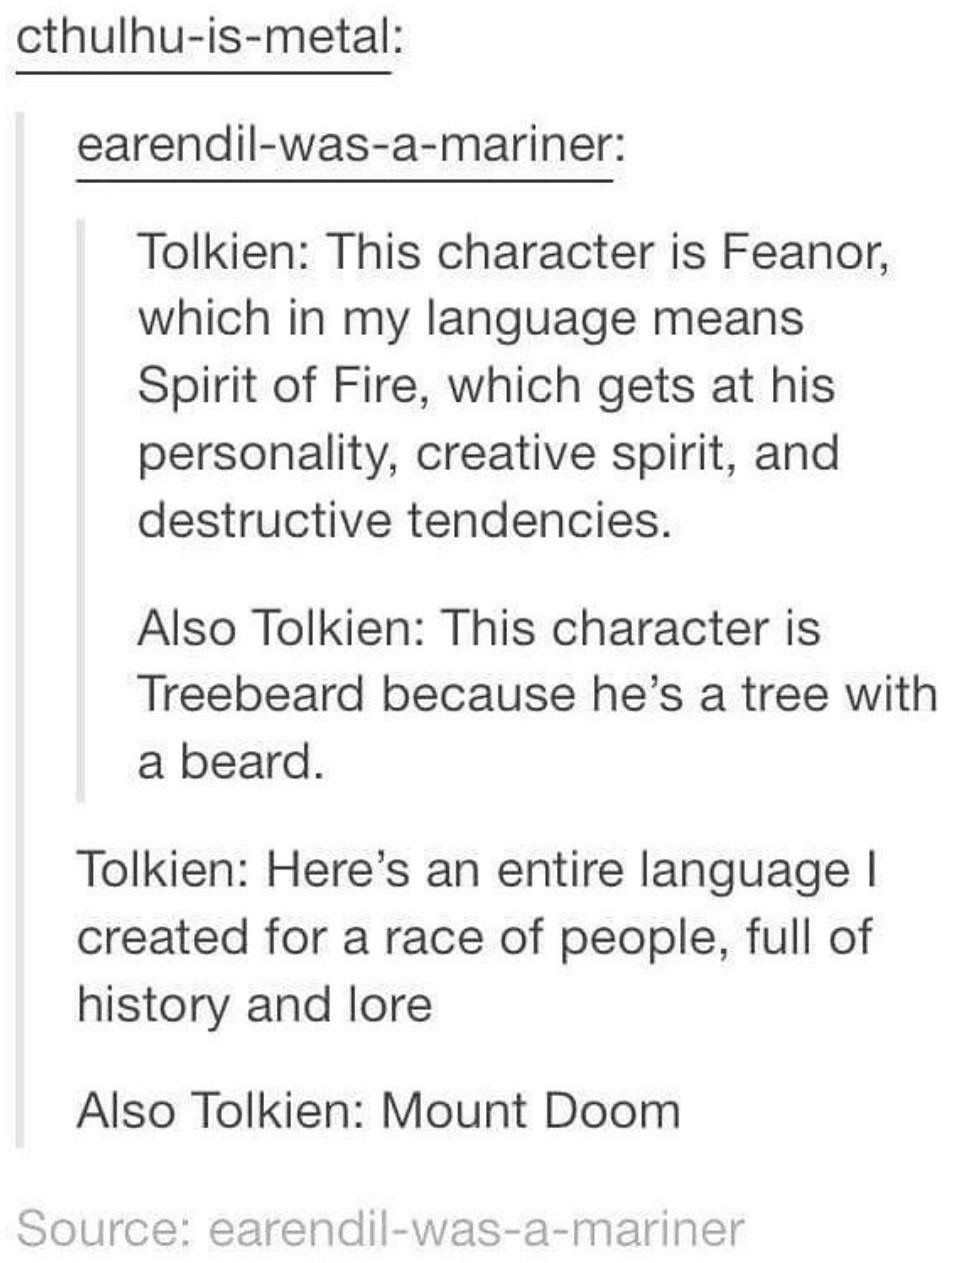 Treebeard Is Treebeard Because His Name Was Too Long In Entish For